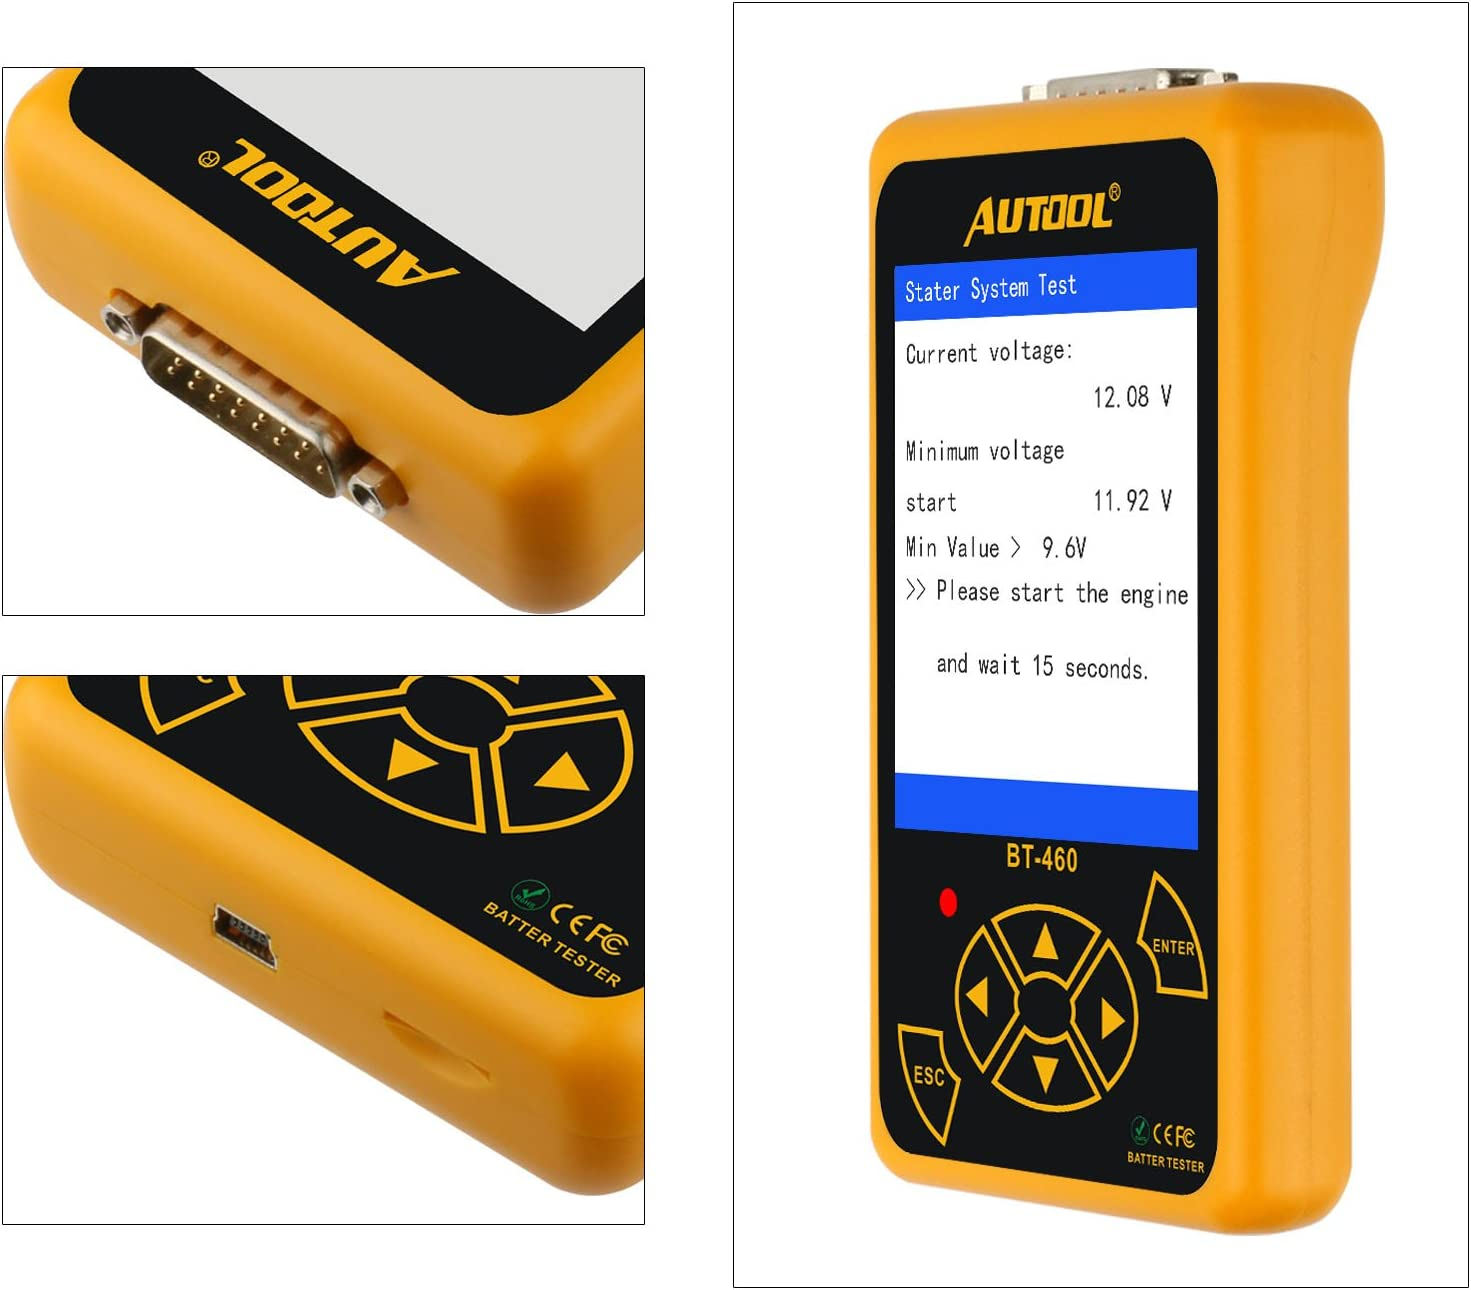 AUTOOL BT-460 Automotive Battery Load Tester Cranking and Charging System Analyzer Scan Tool for Cars//SUVs//Trucks Car Digital Battery Analyzer 12V//24V 100-2400 CCA